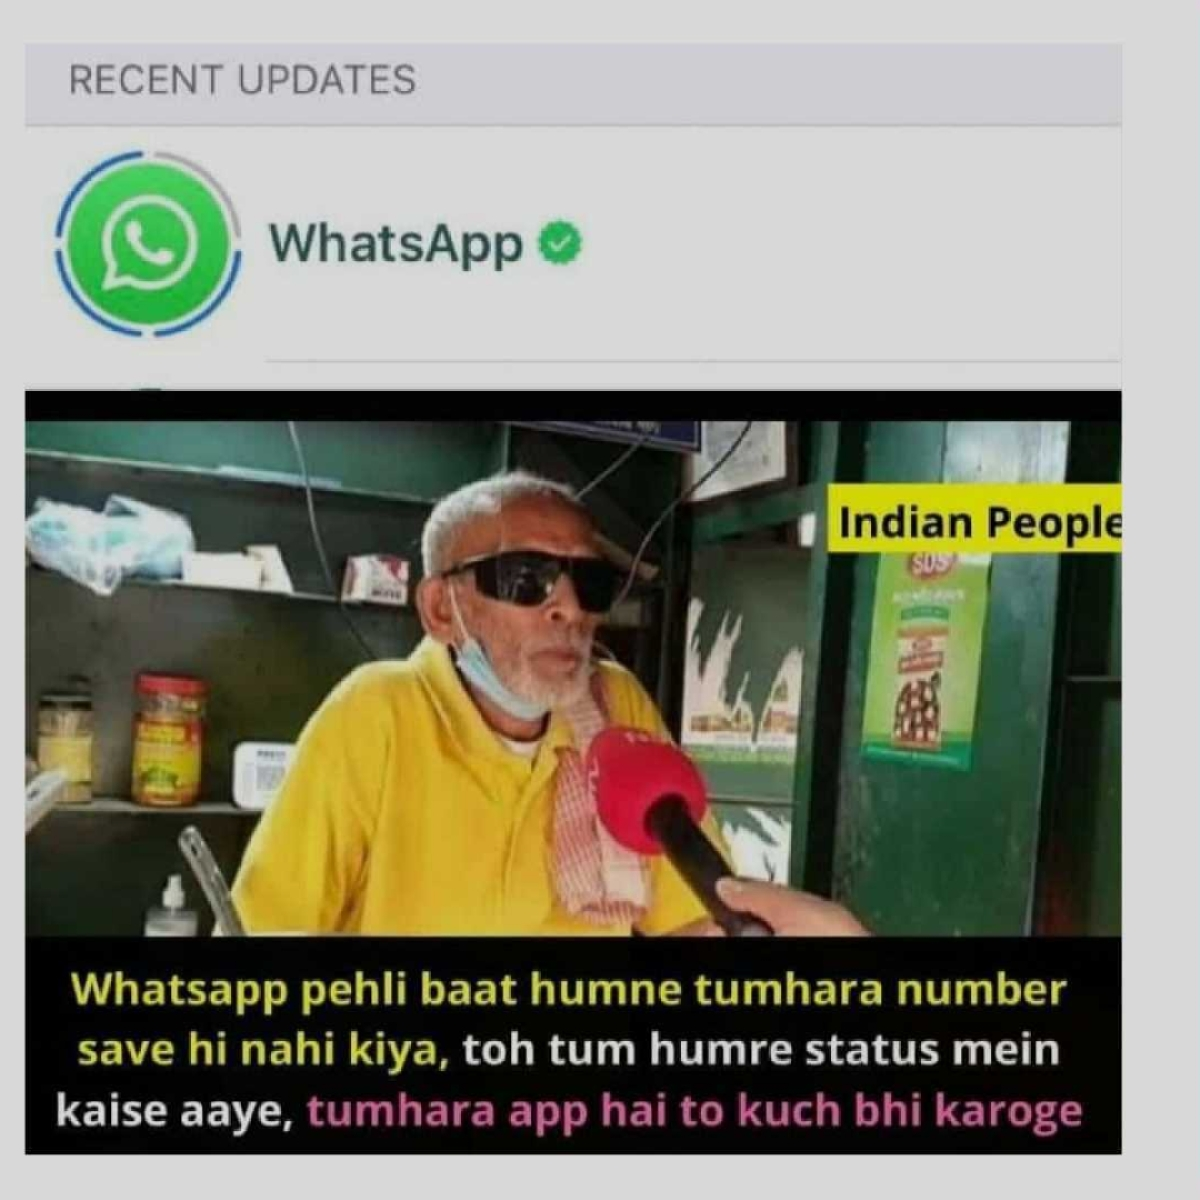 'Tum humare status me kaise aaye': Twitter reacts after WhatsApp sets status to explain its privacy features